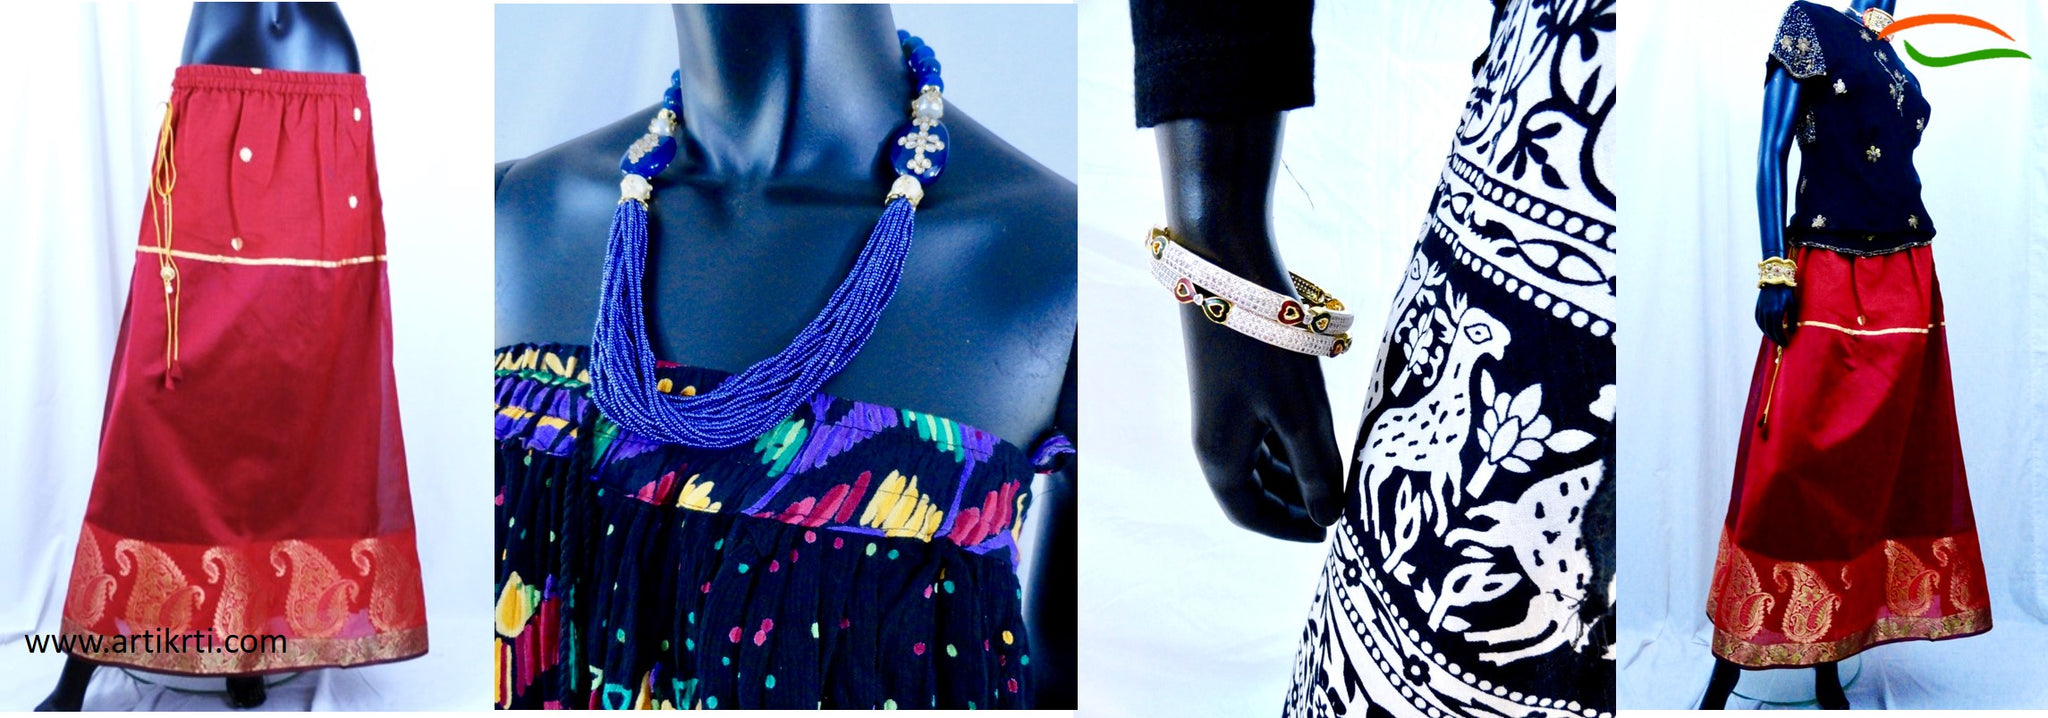 womenswear-skirts-indian-jewelry-bracelts-earrings-necklaces-artikrti